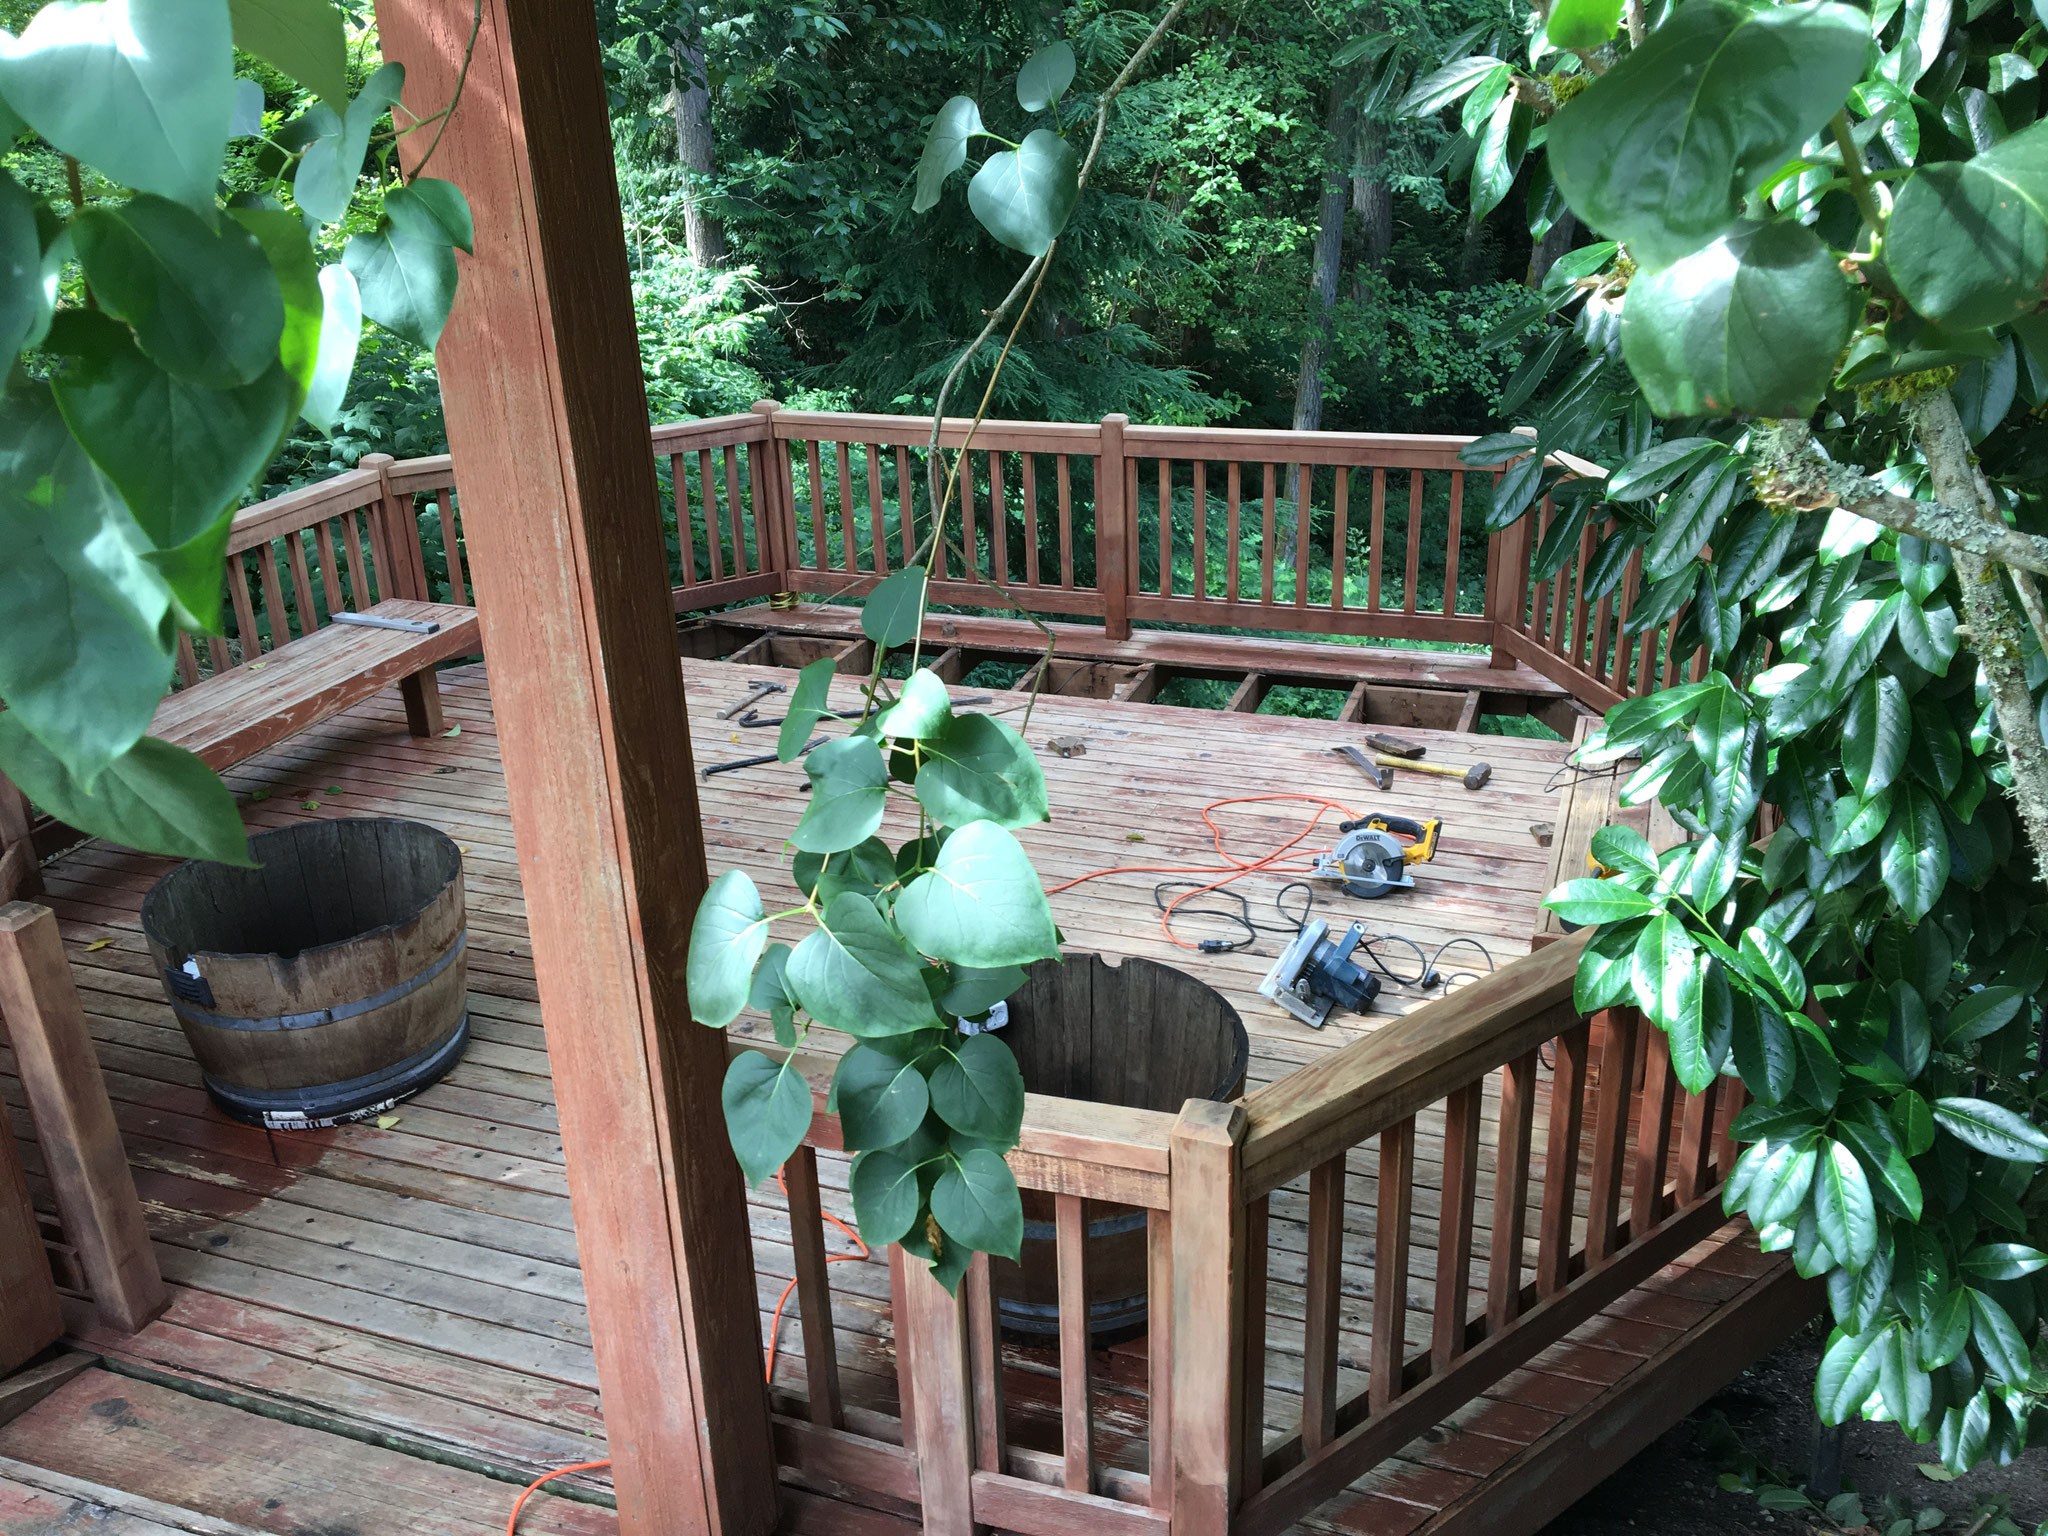 Starting to replace this deck...lots of rot and unsafe boards.